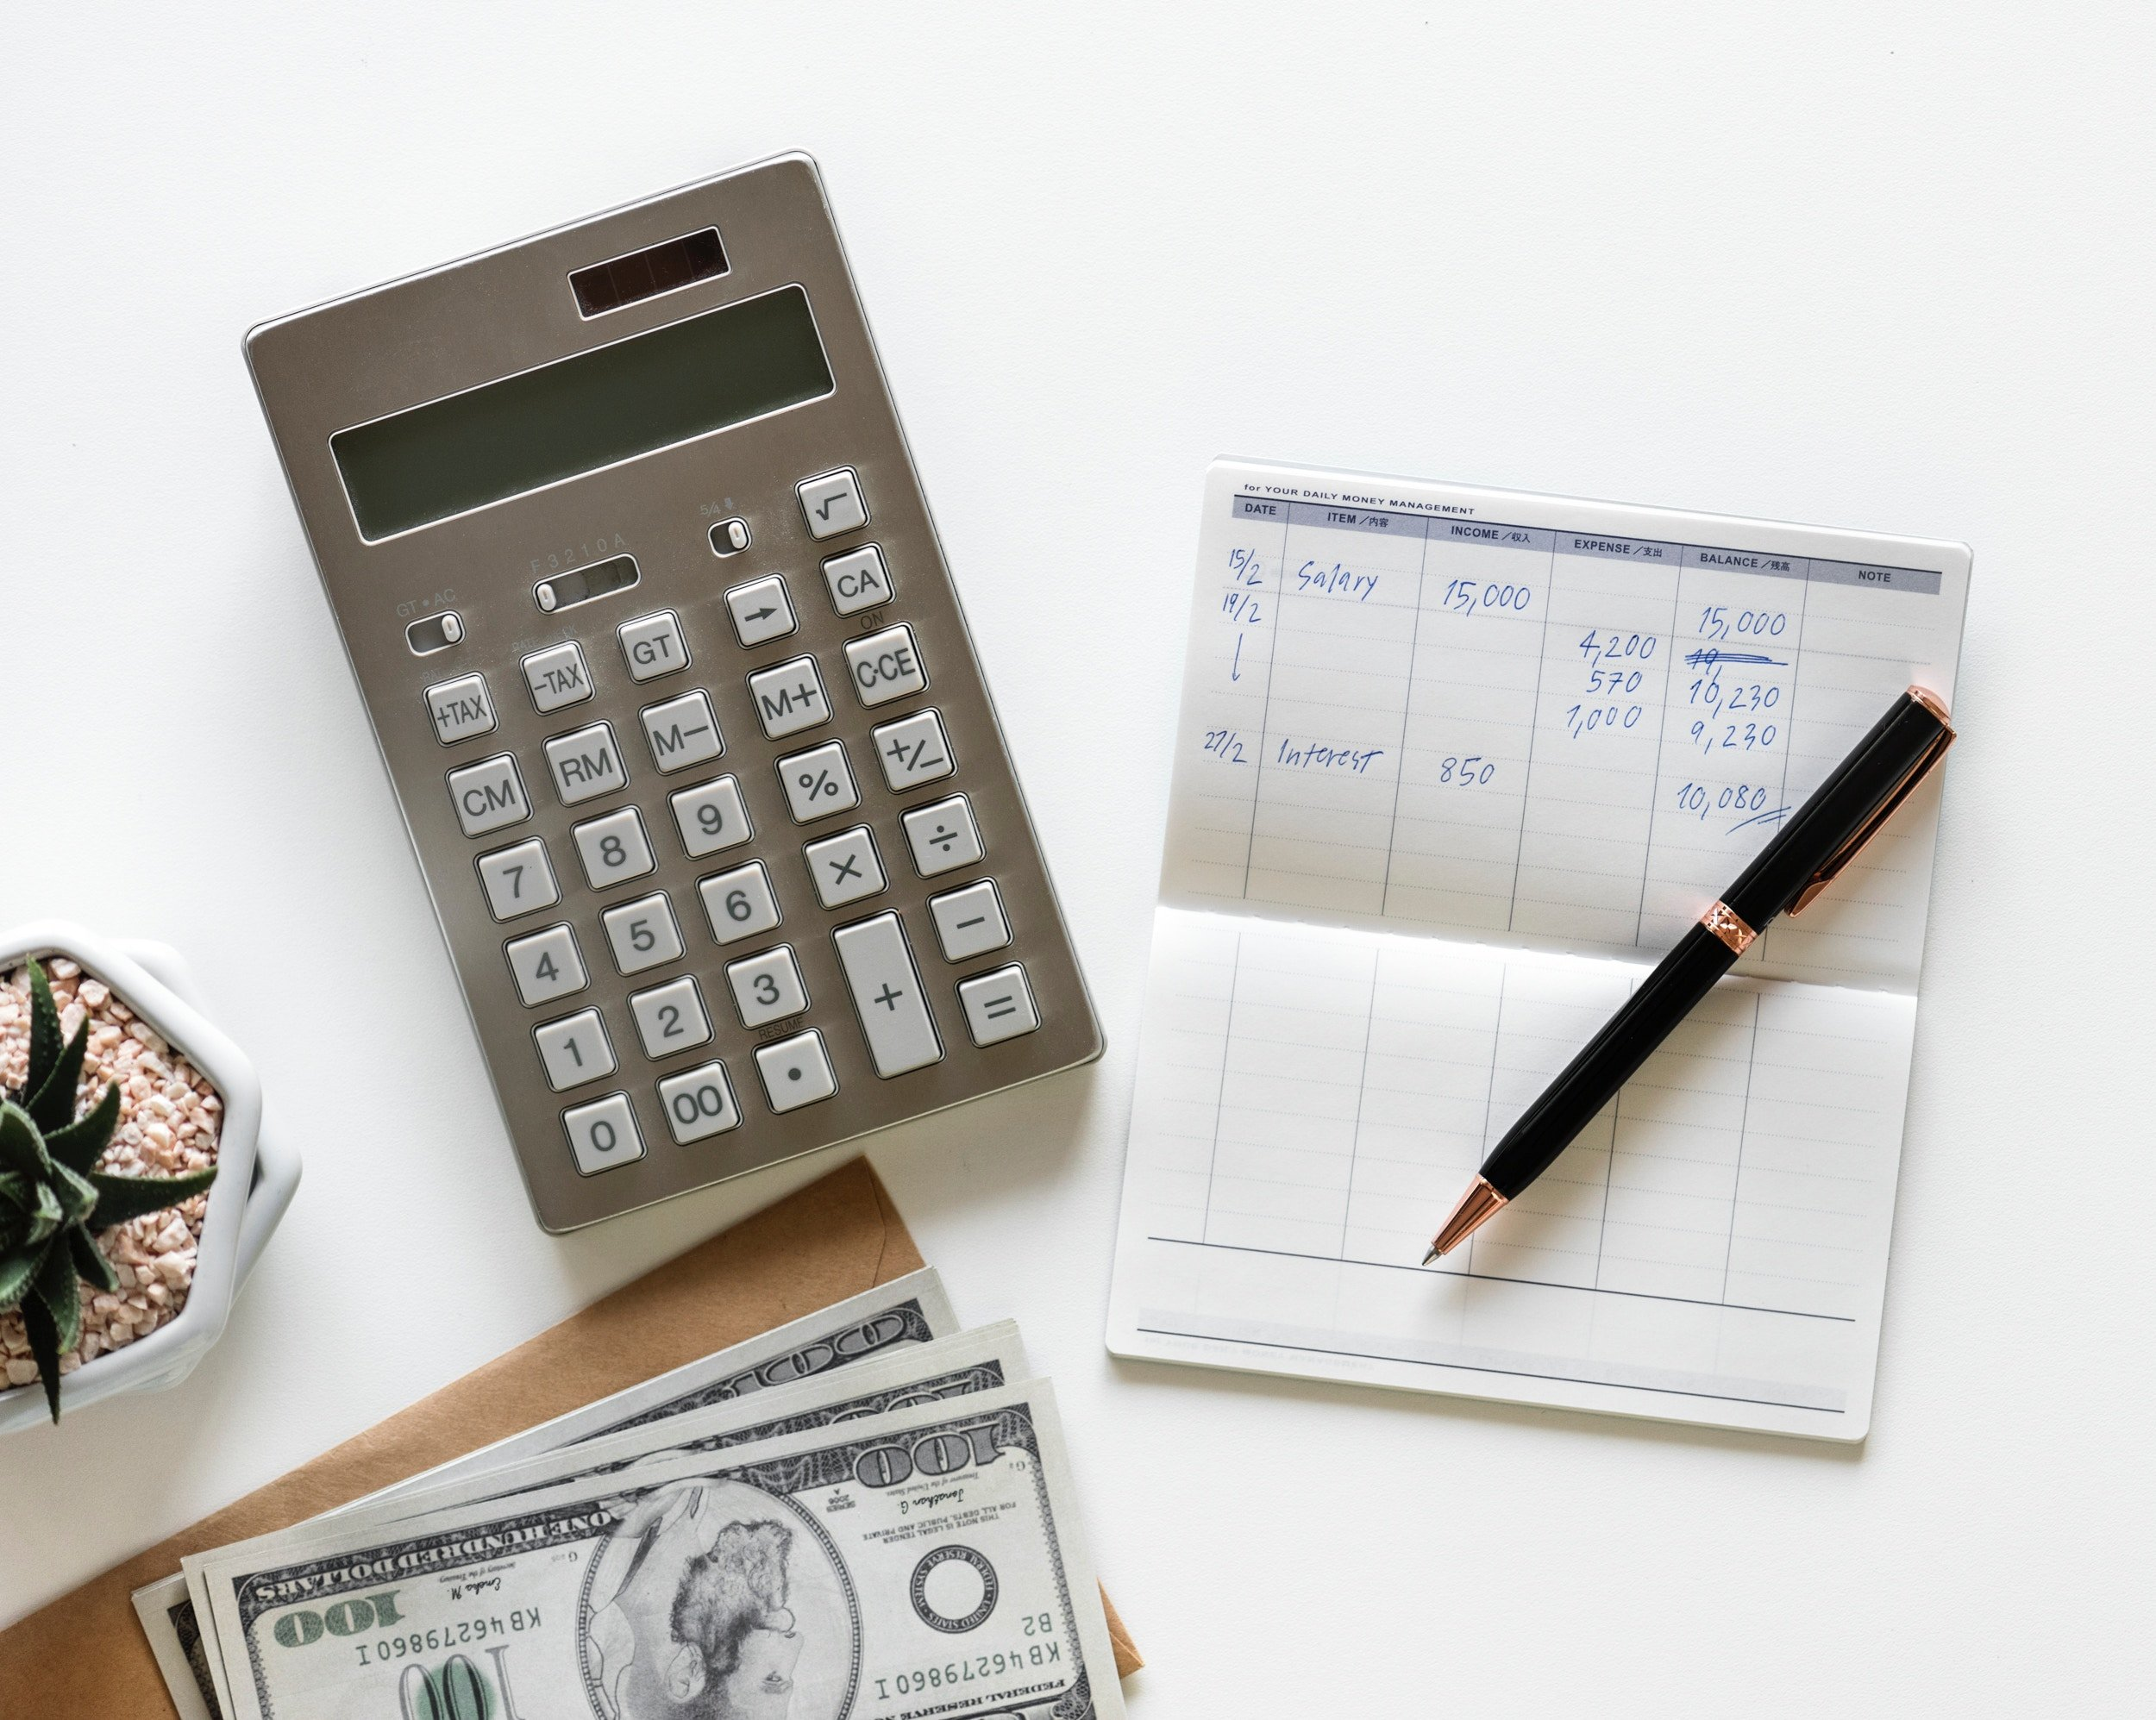 Image of money, calculator and notebook.